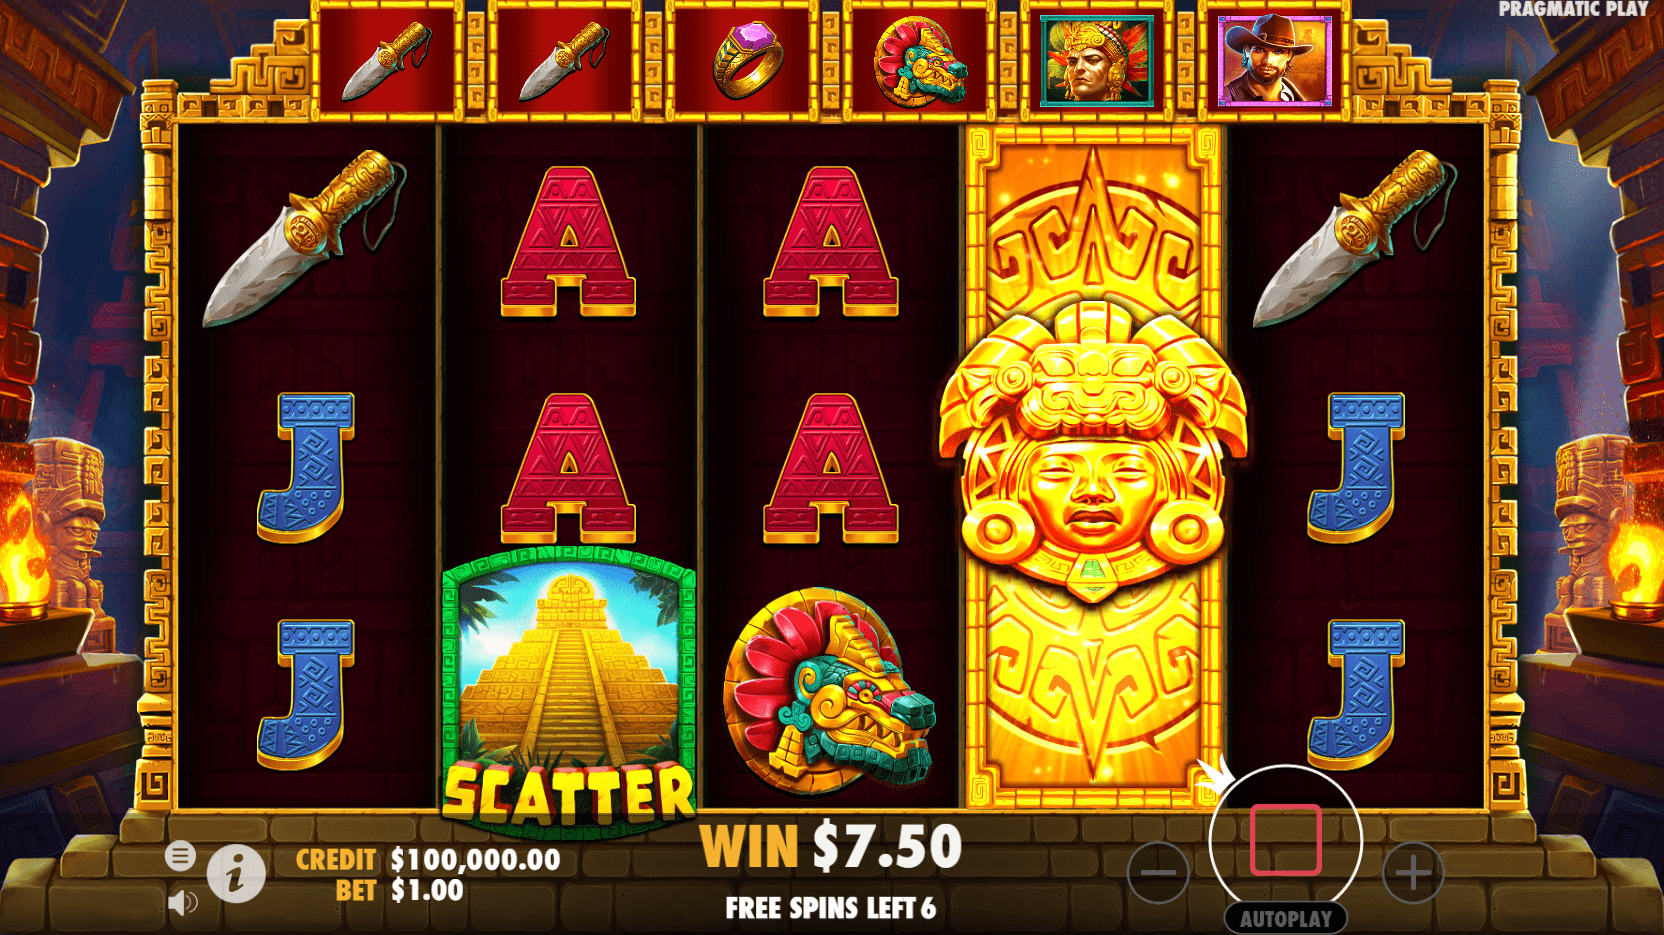 John Hunter and the Mayan Gods video slot progressive free spins